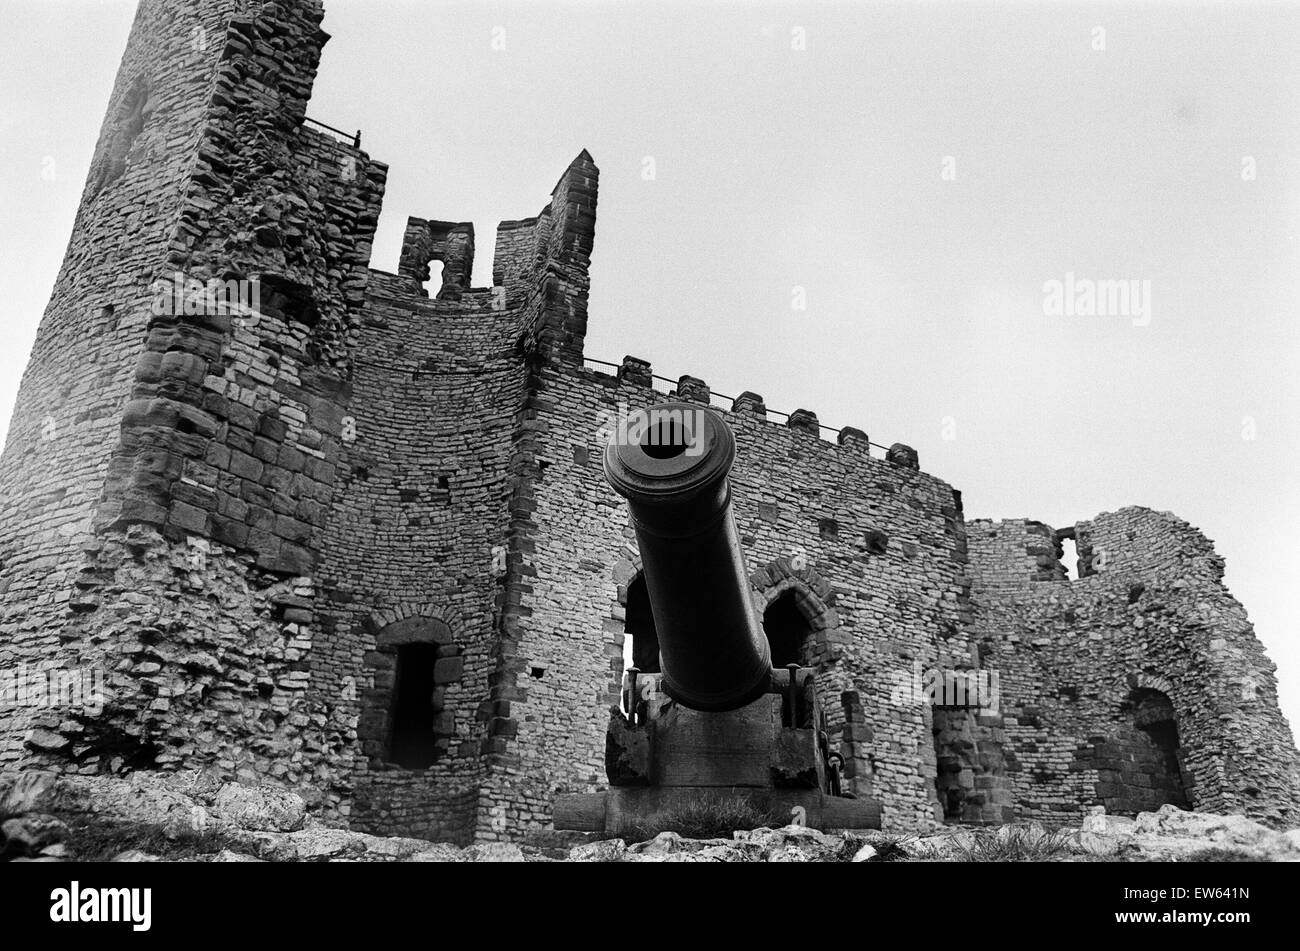 Dudley Castle, a ruined fortification in the town of Dudley, West Midlands, England. 25th May 1968. - Stock Image